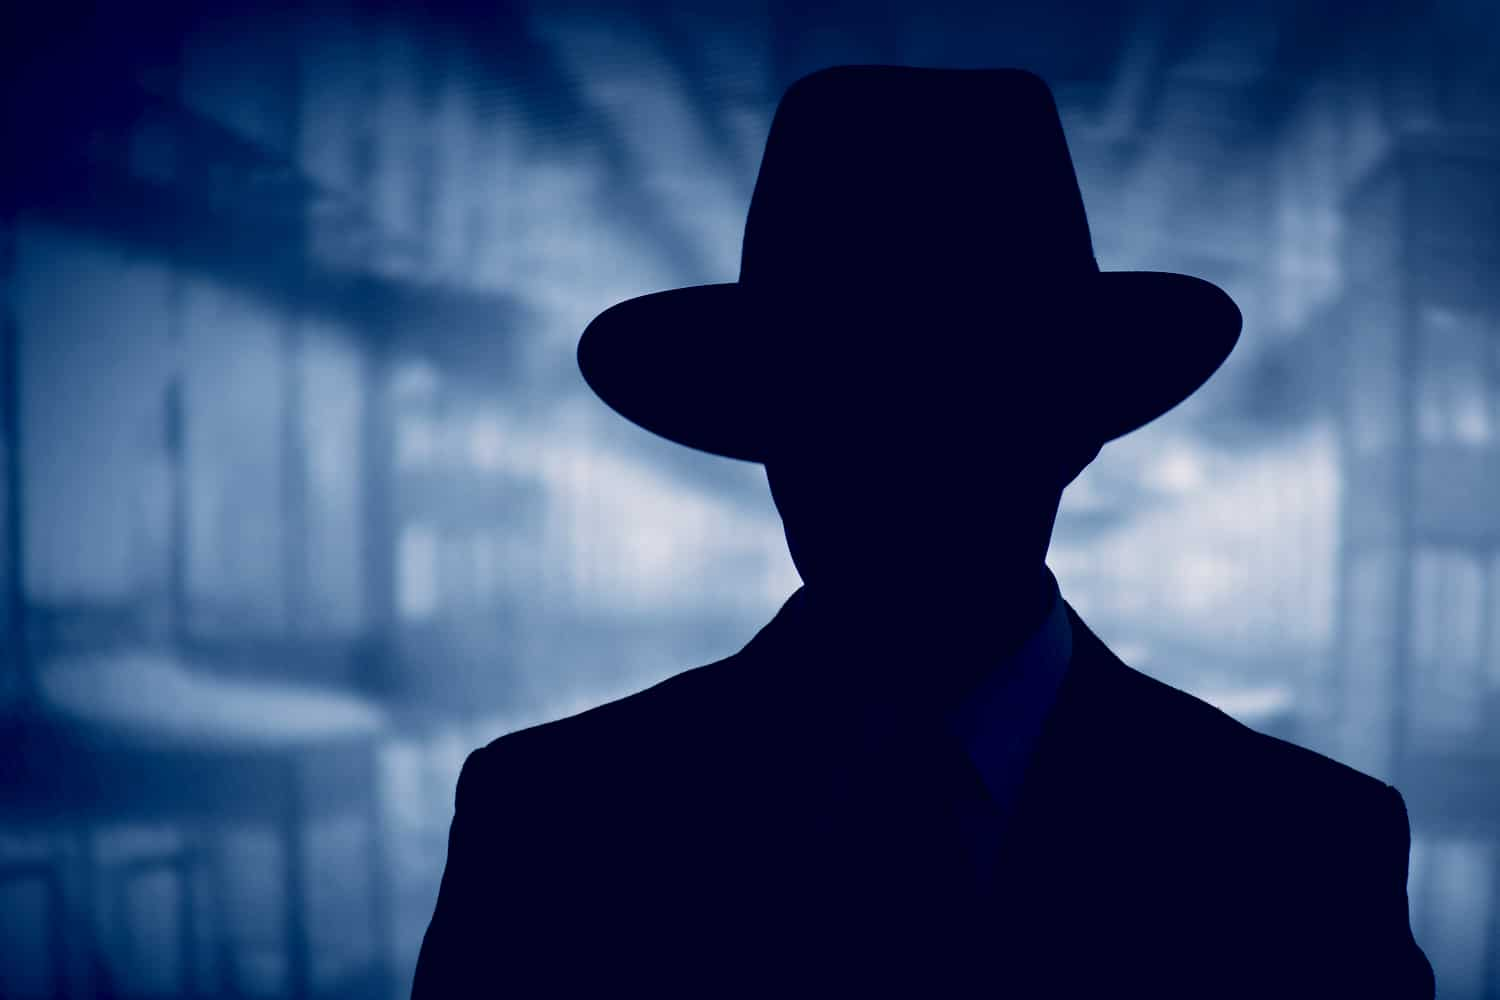 Is a private eye watching you?